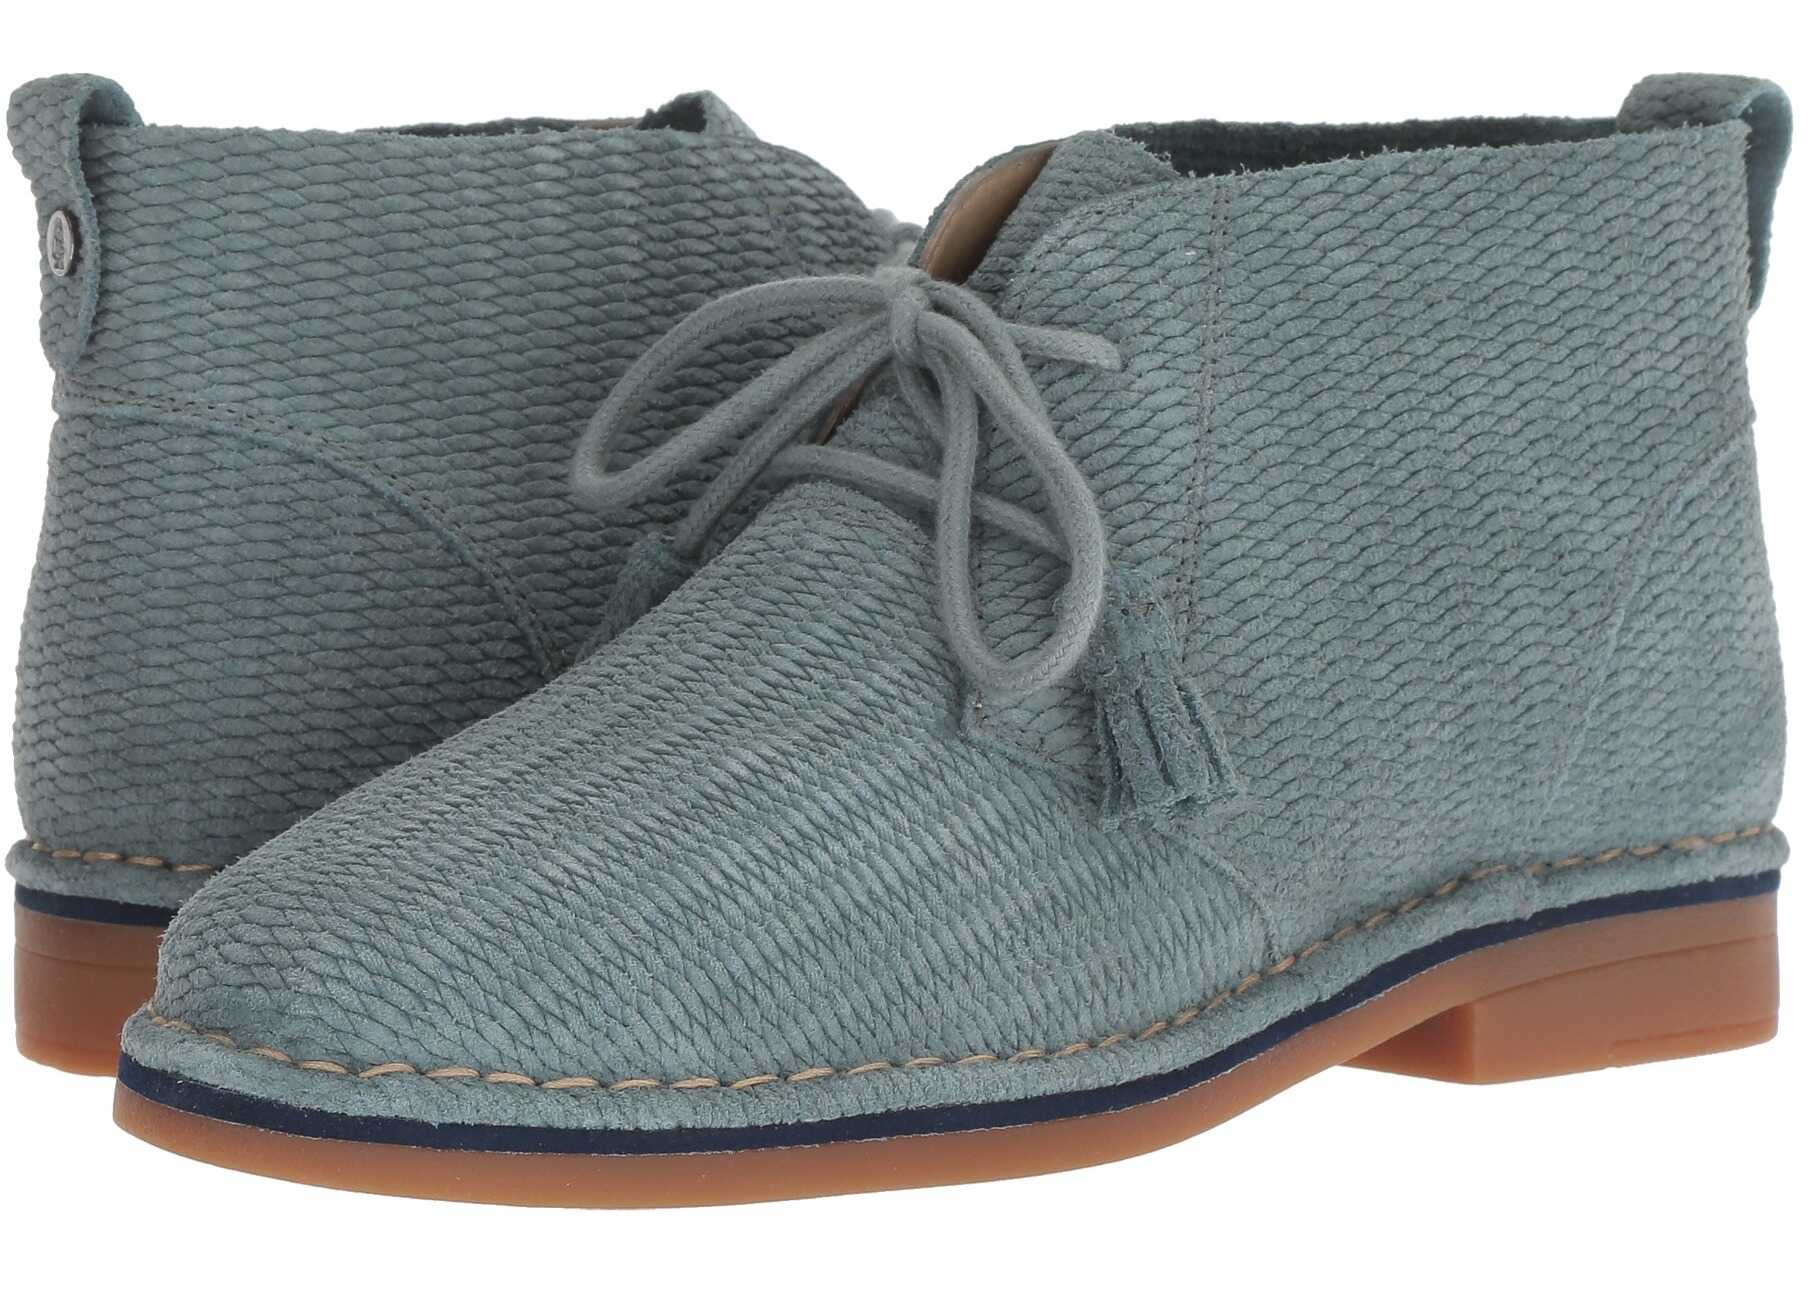 Hush Puppies Cyra Catelyn Storm Embossed Suede